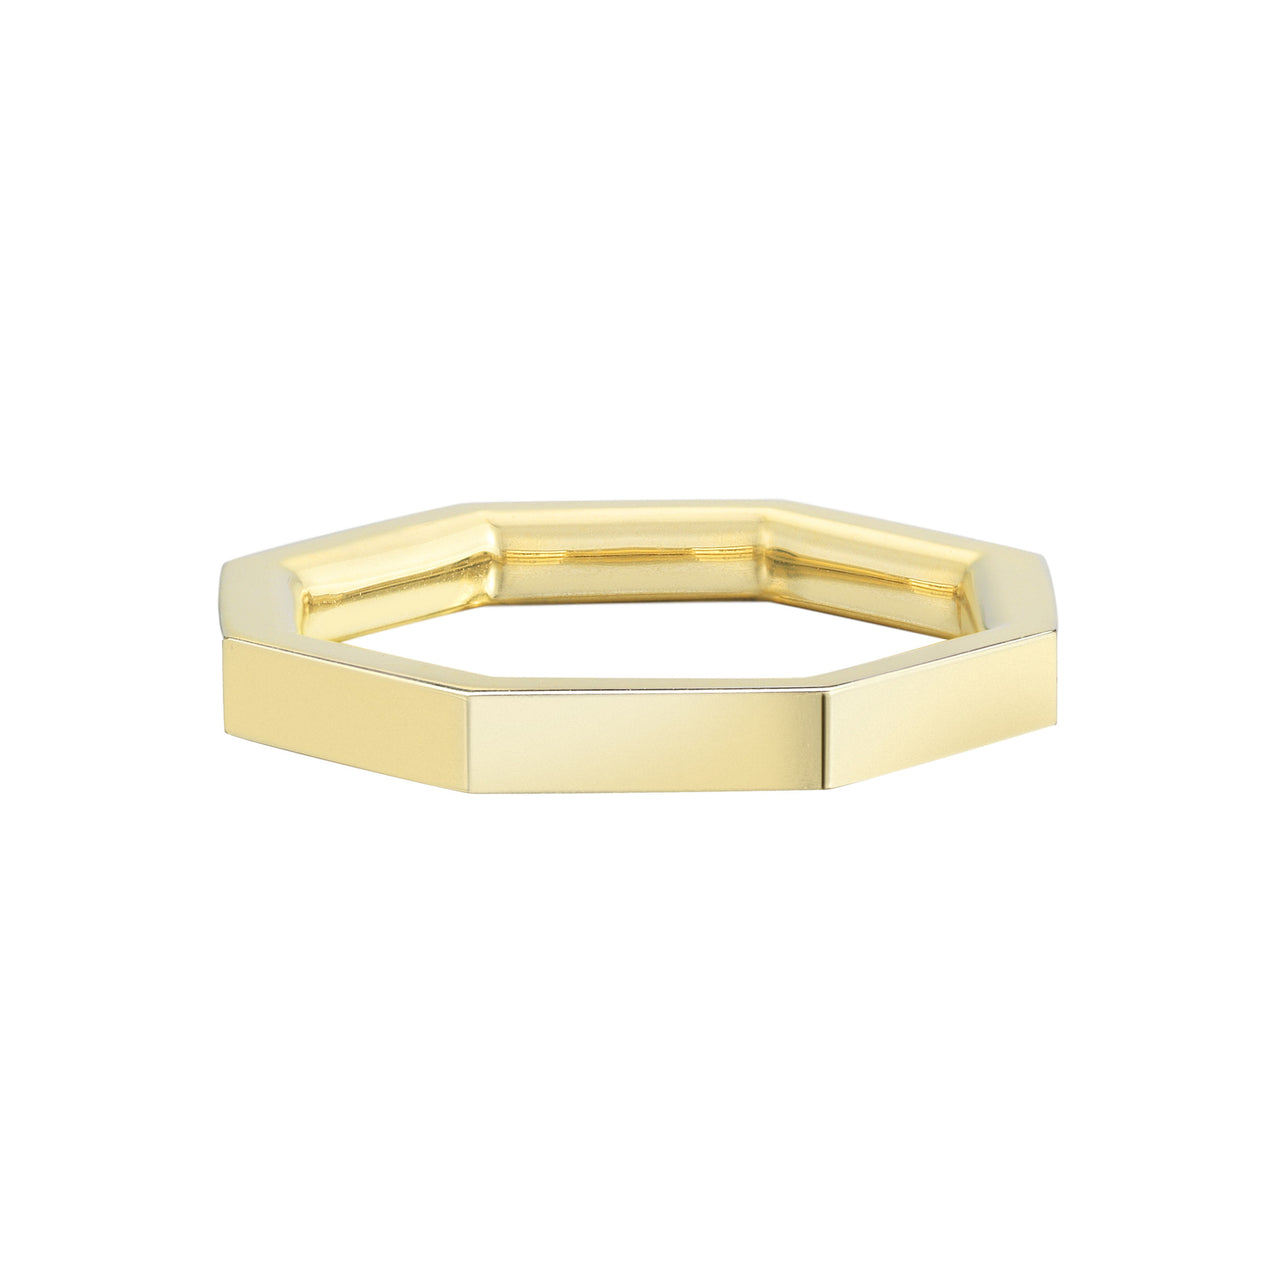 comfortable geometric minimalistic ring or wedding band in 18k gold by finn by candice pool neistat